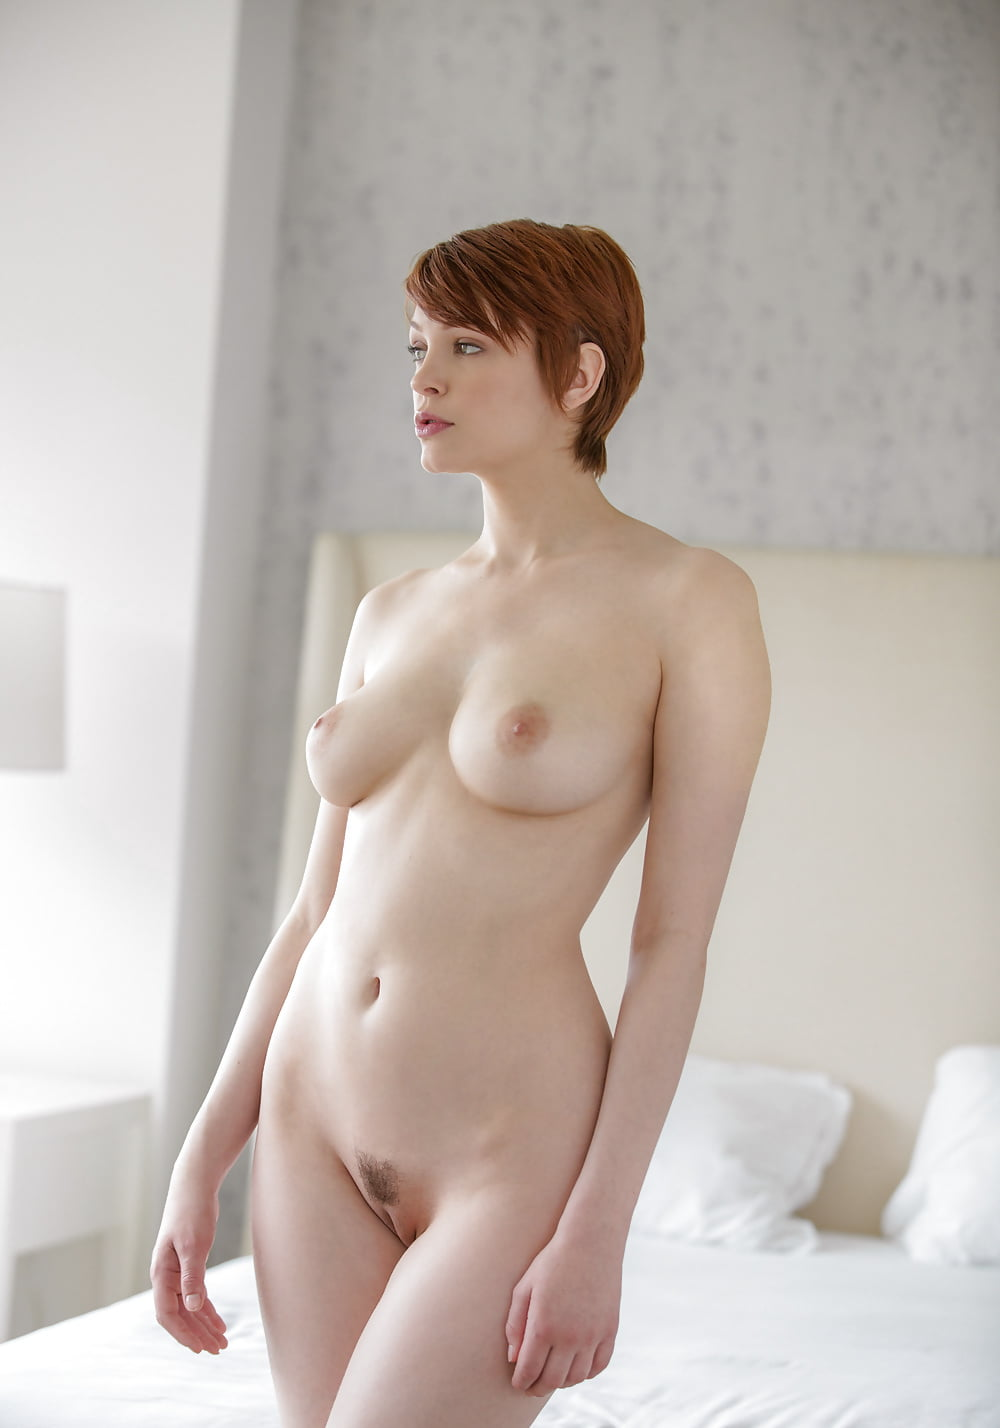 Beautiful naked girl with short hair